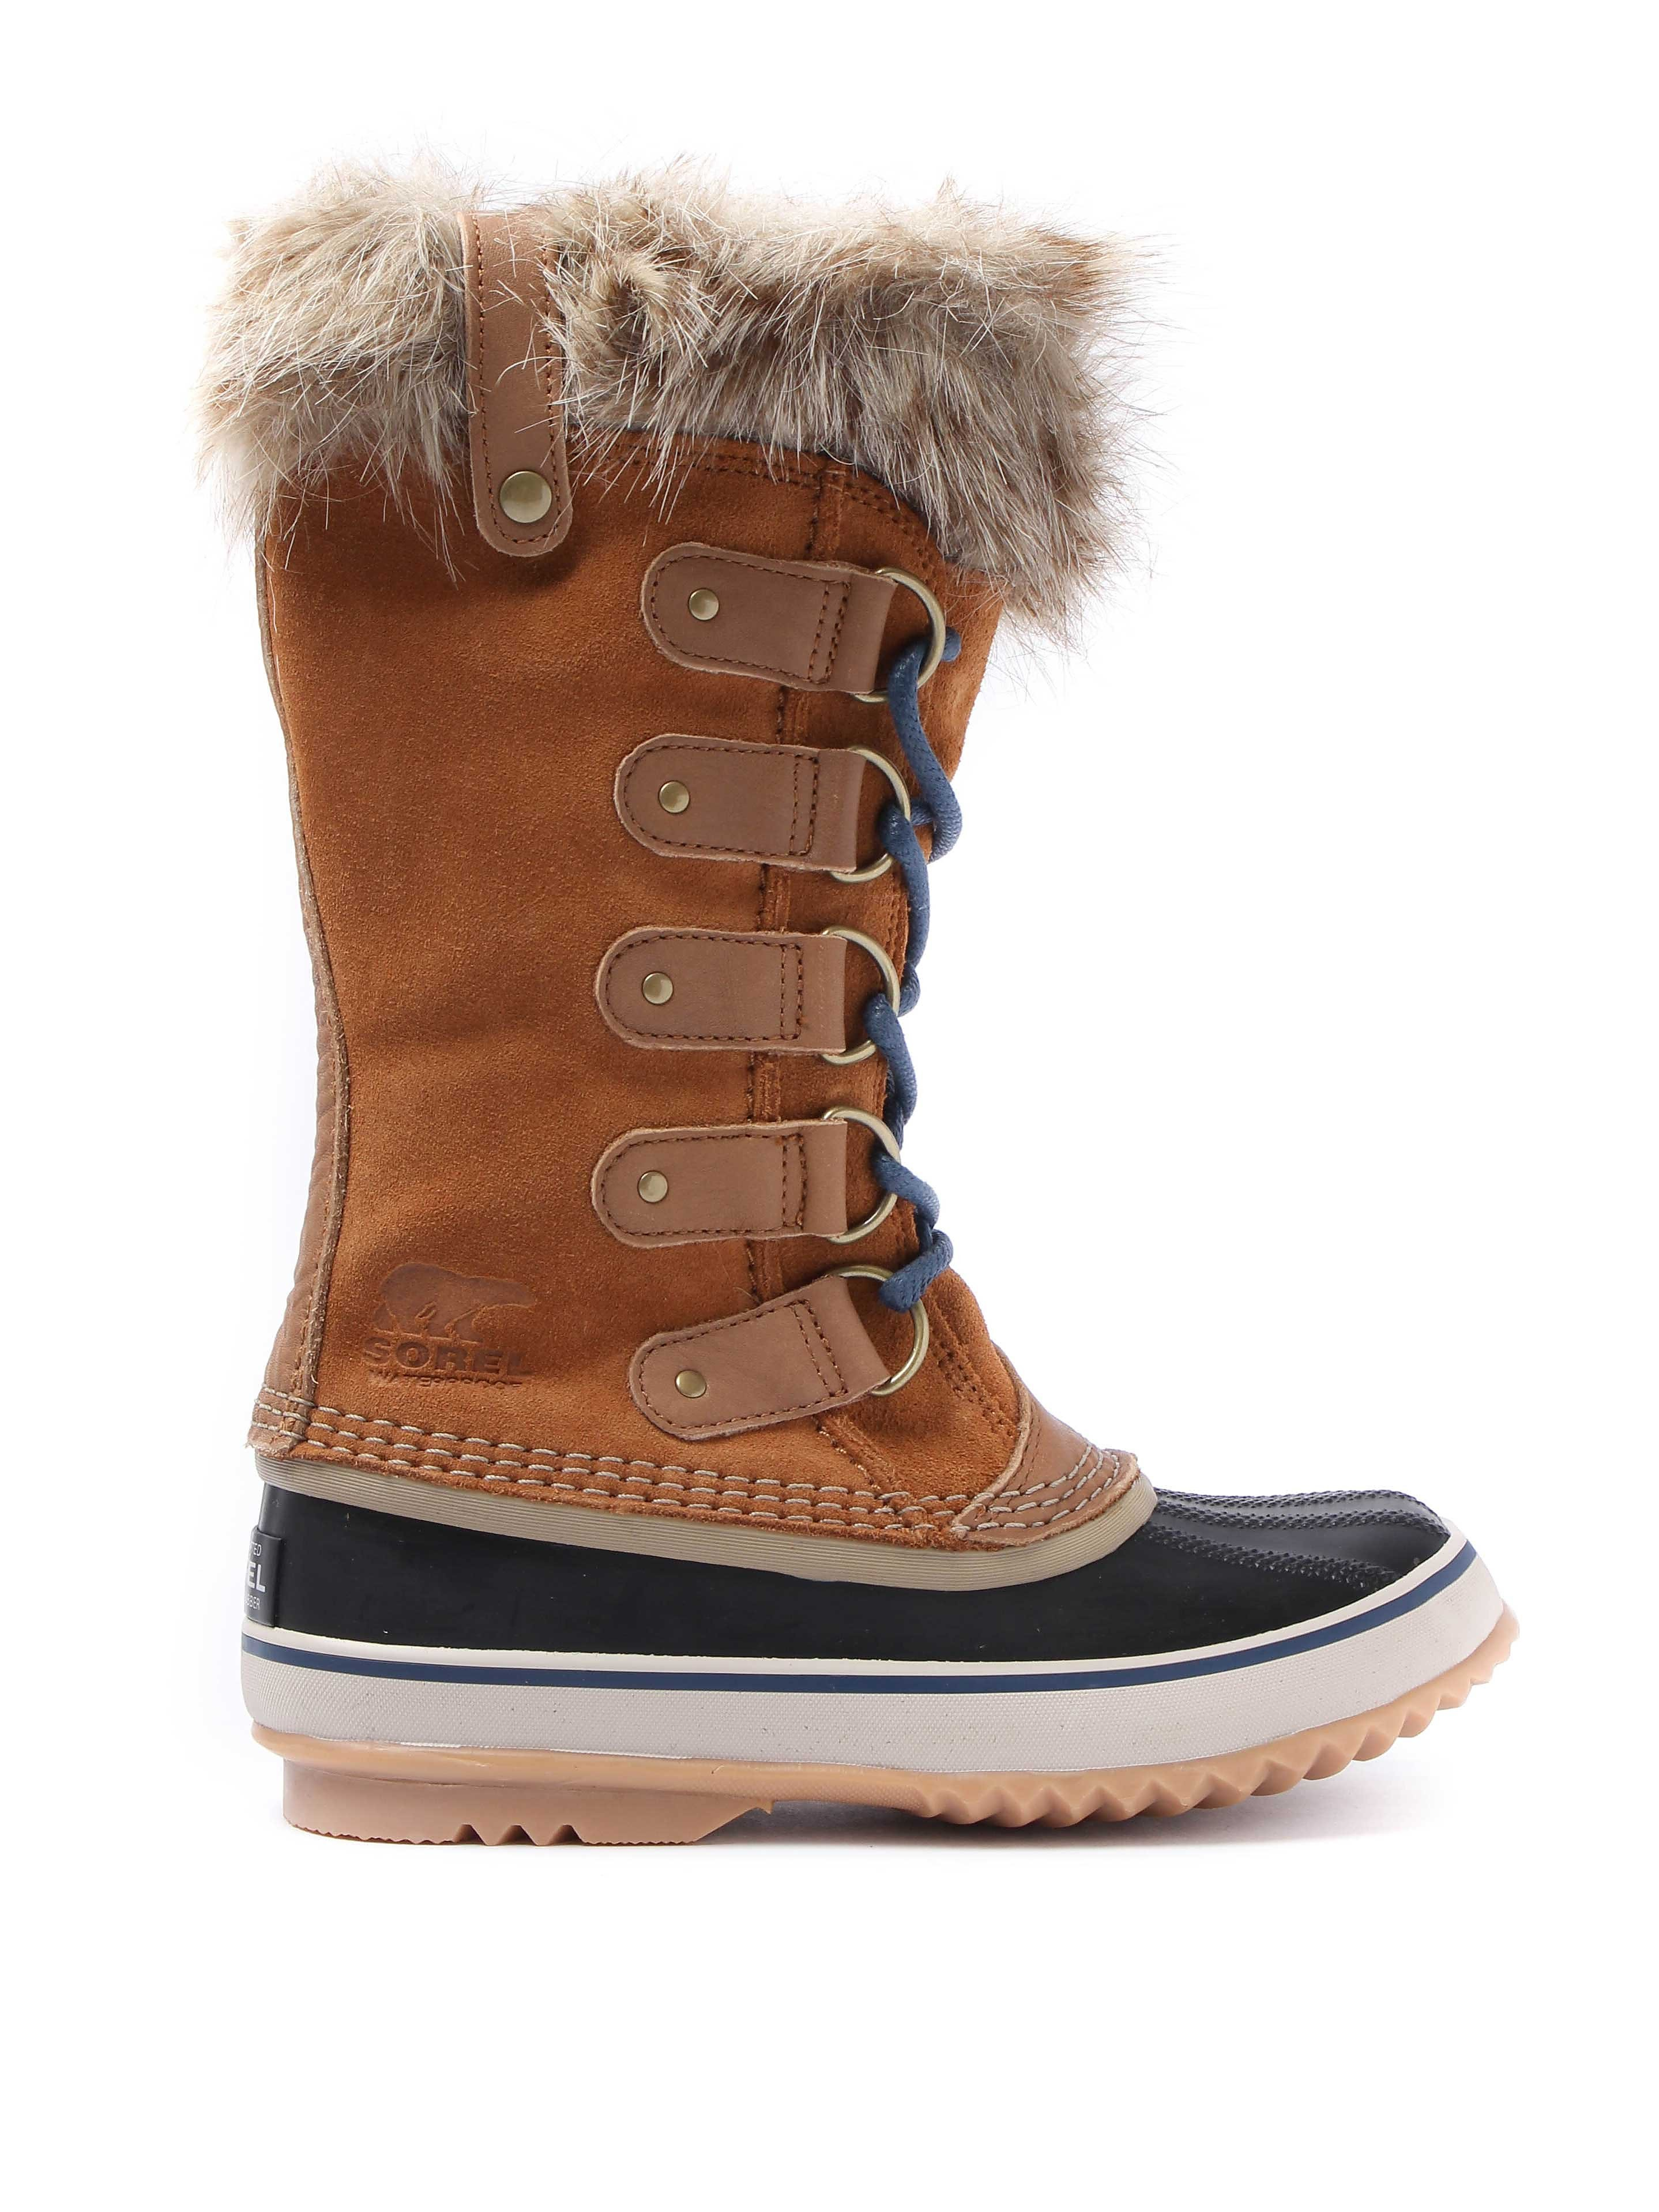 Sorel Joan of Arctic Boots - Elk